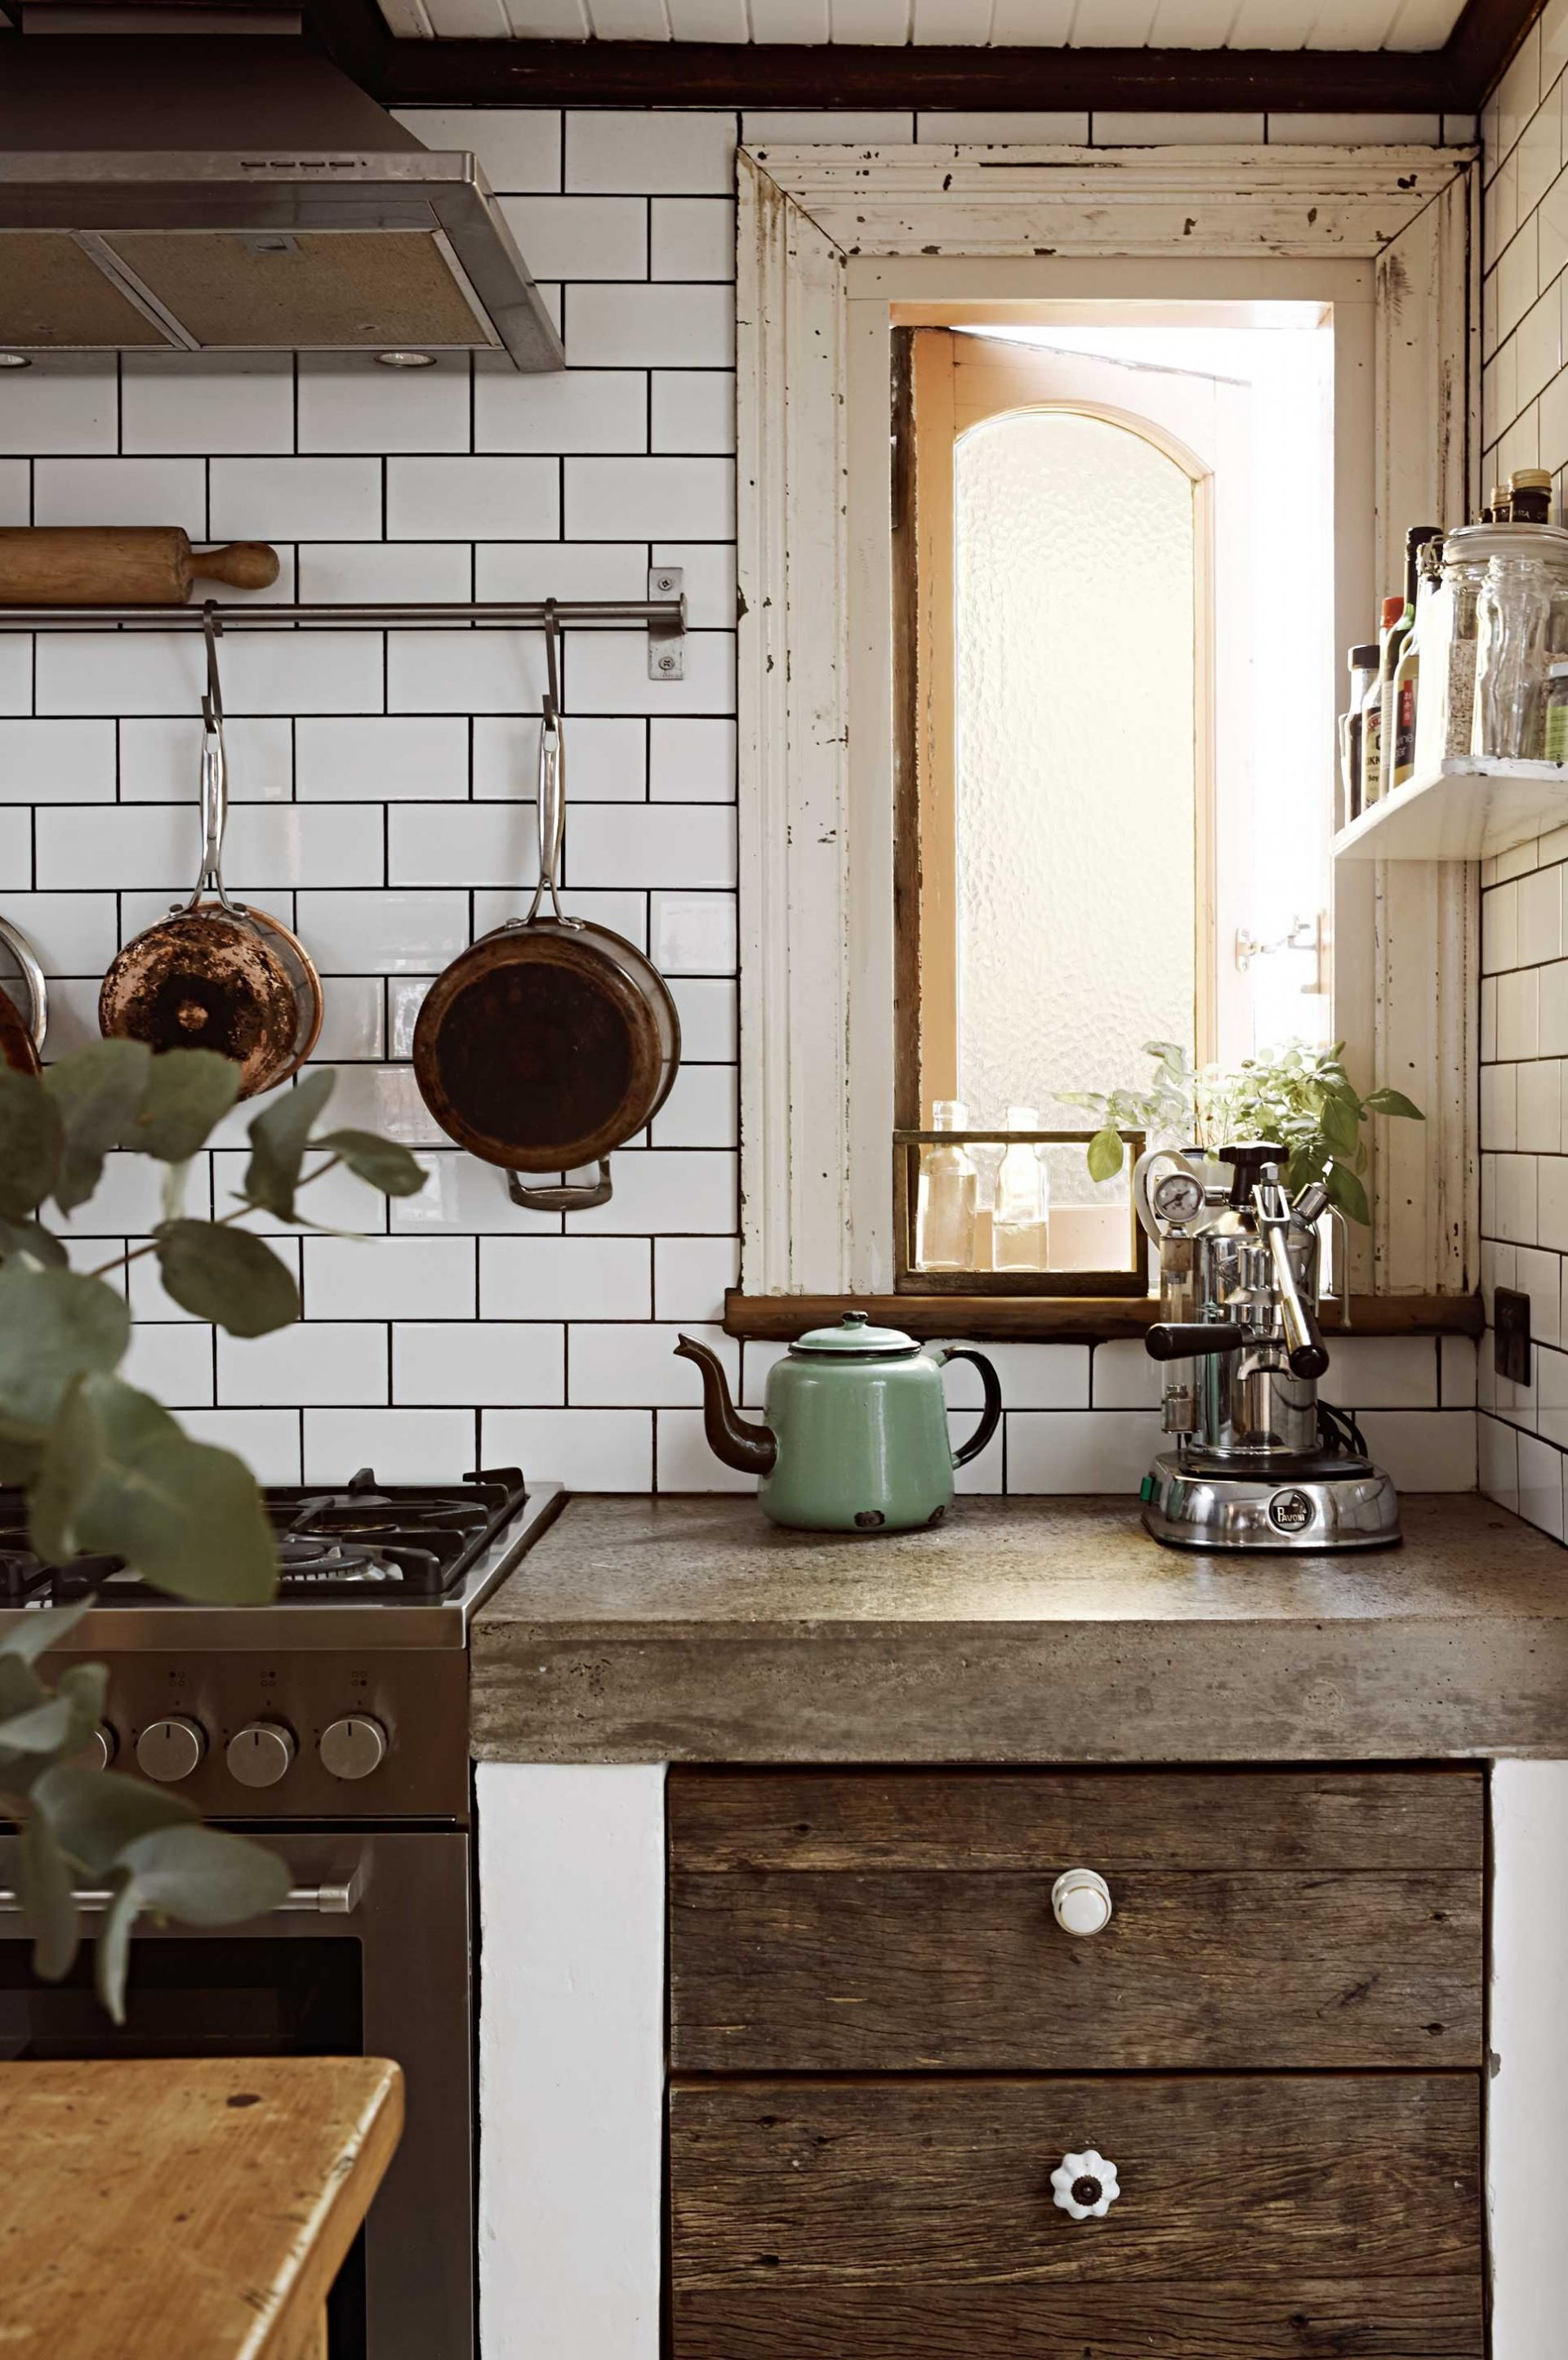 Rustic Kitchen Ideas From Insideout Com Au Styling By Nicole